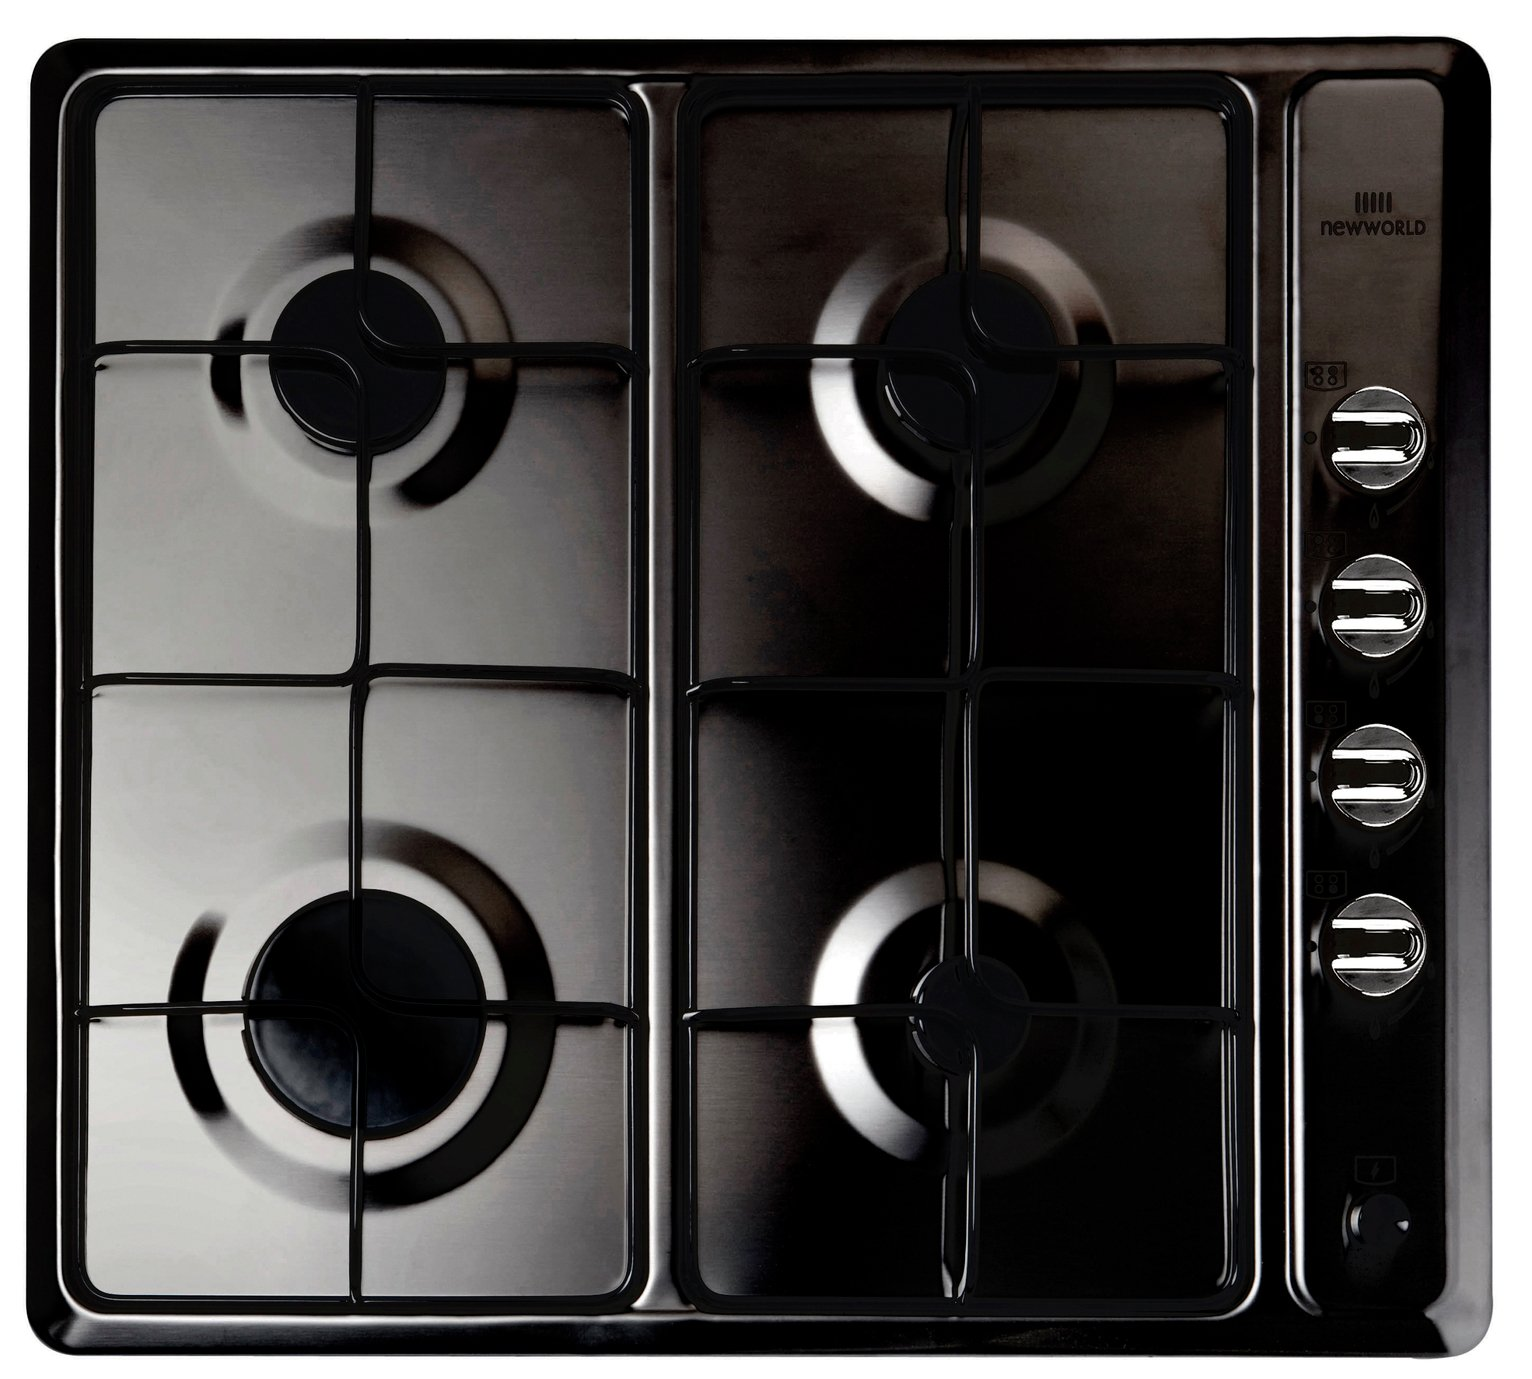 New World - NWGHU601 - Gas Hob - Black